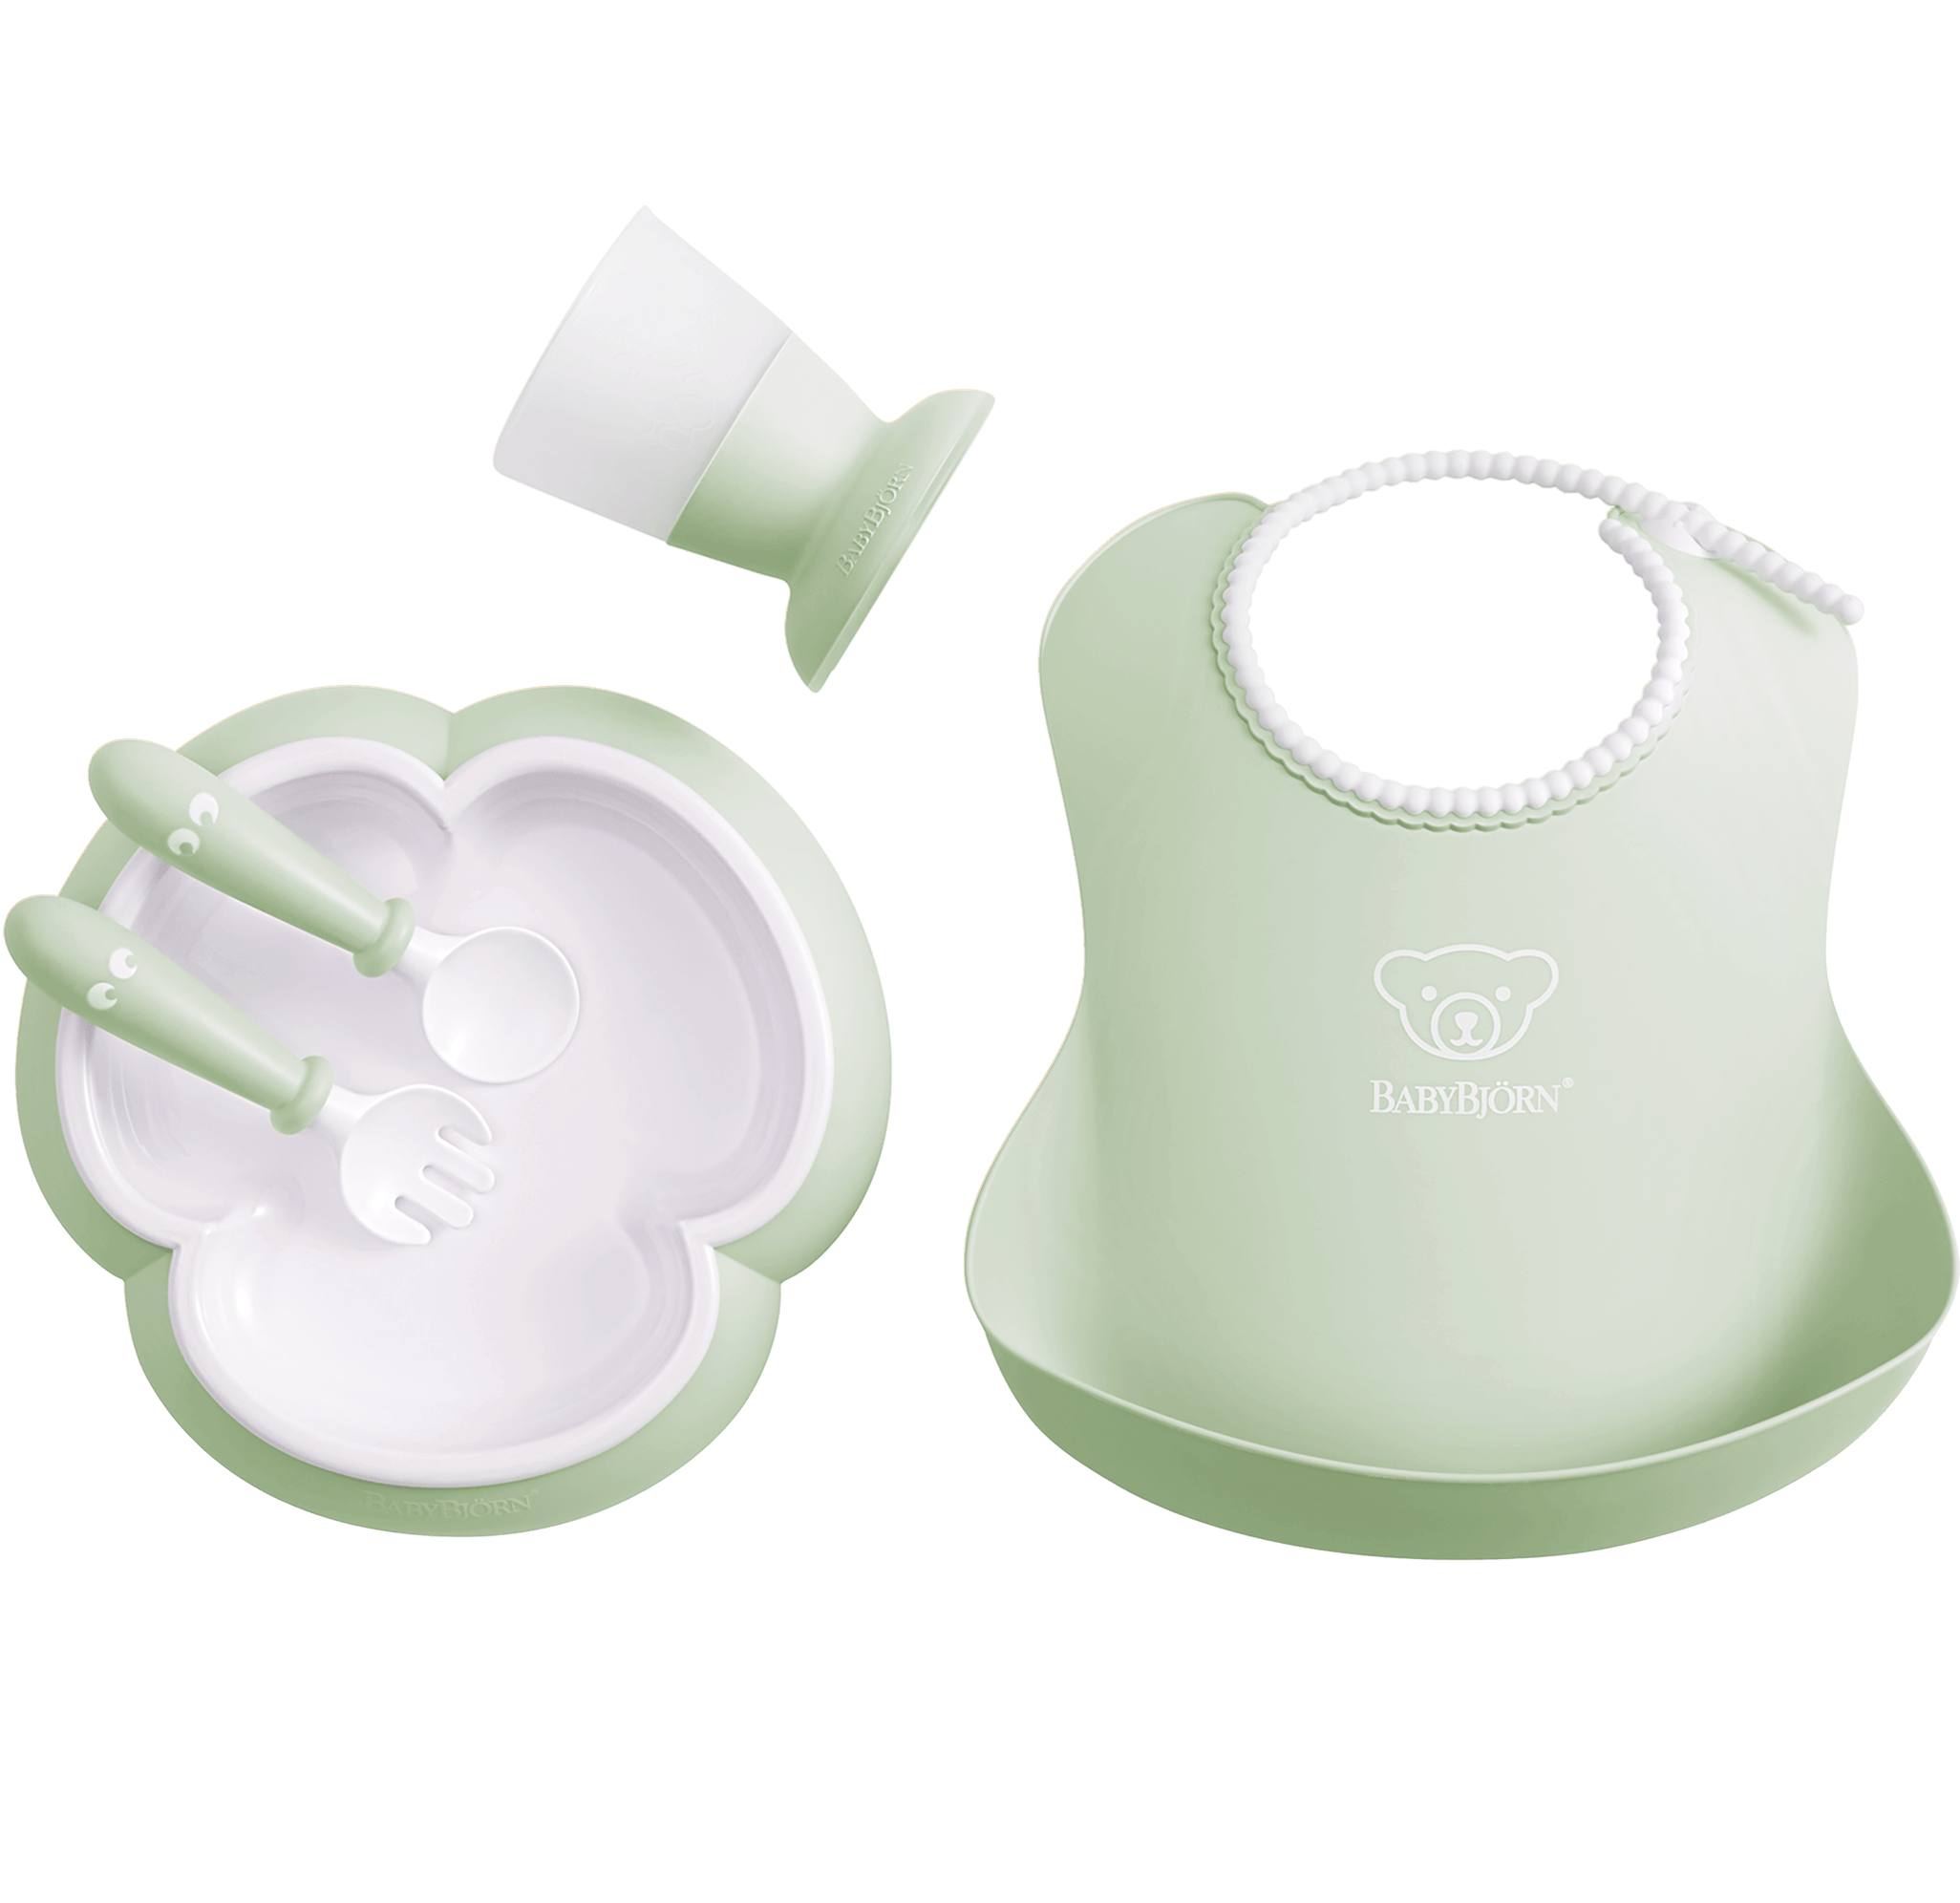 baby-dinner-set-powder-green-BABYBJÖRN